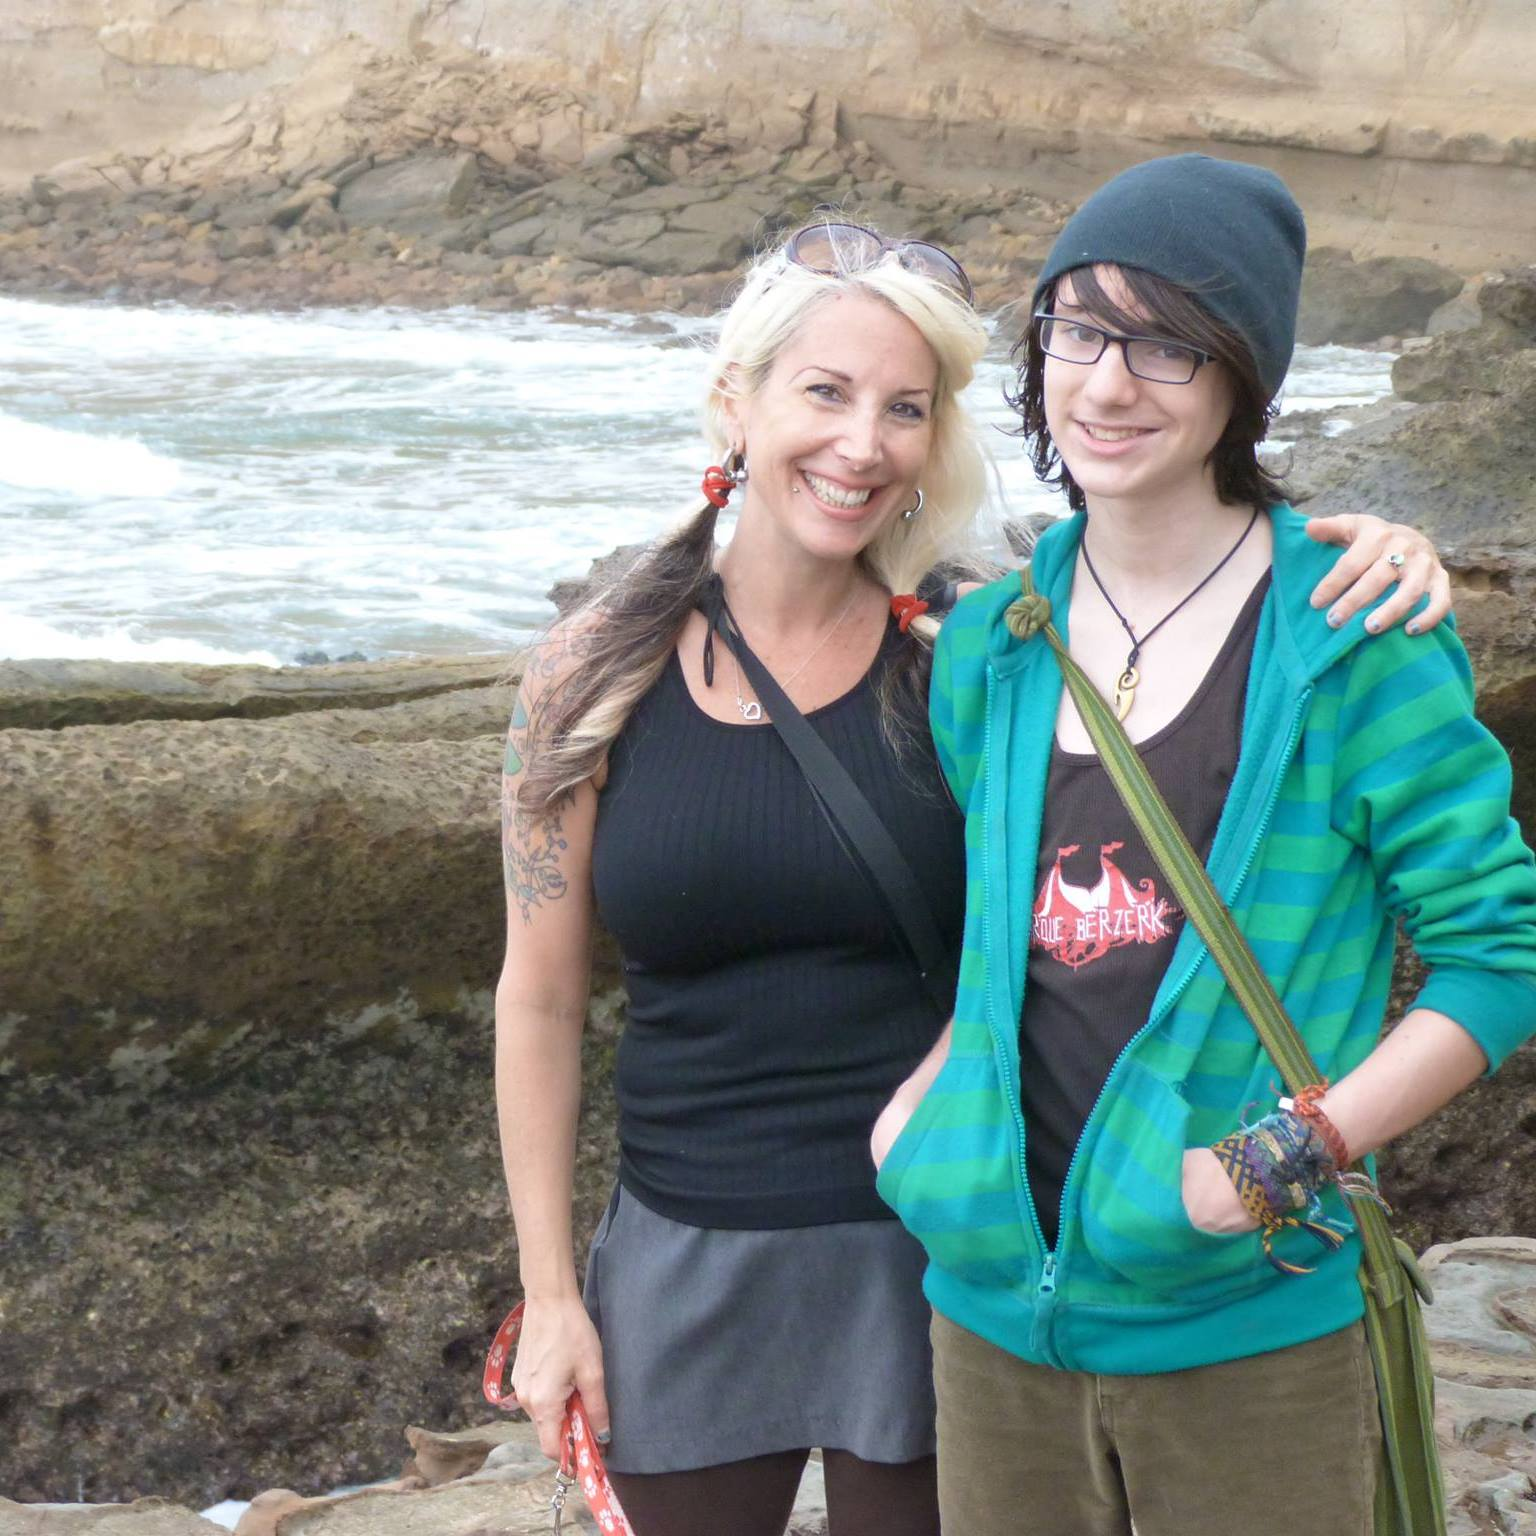 Lainie & Miro on Ecuador's coast